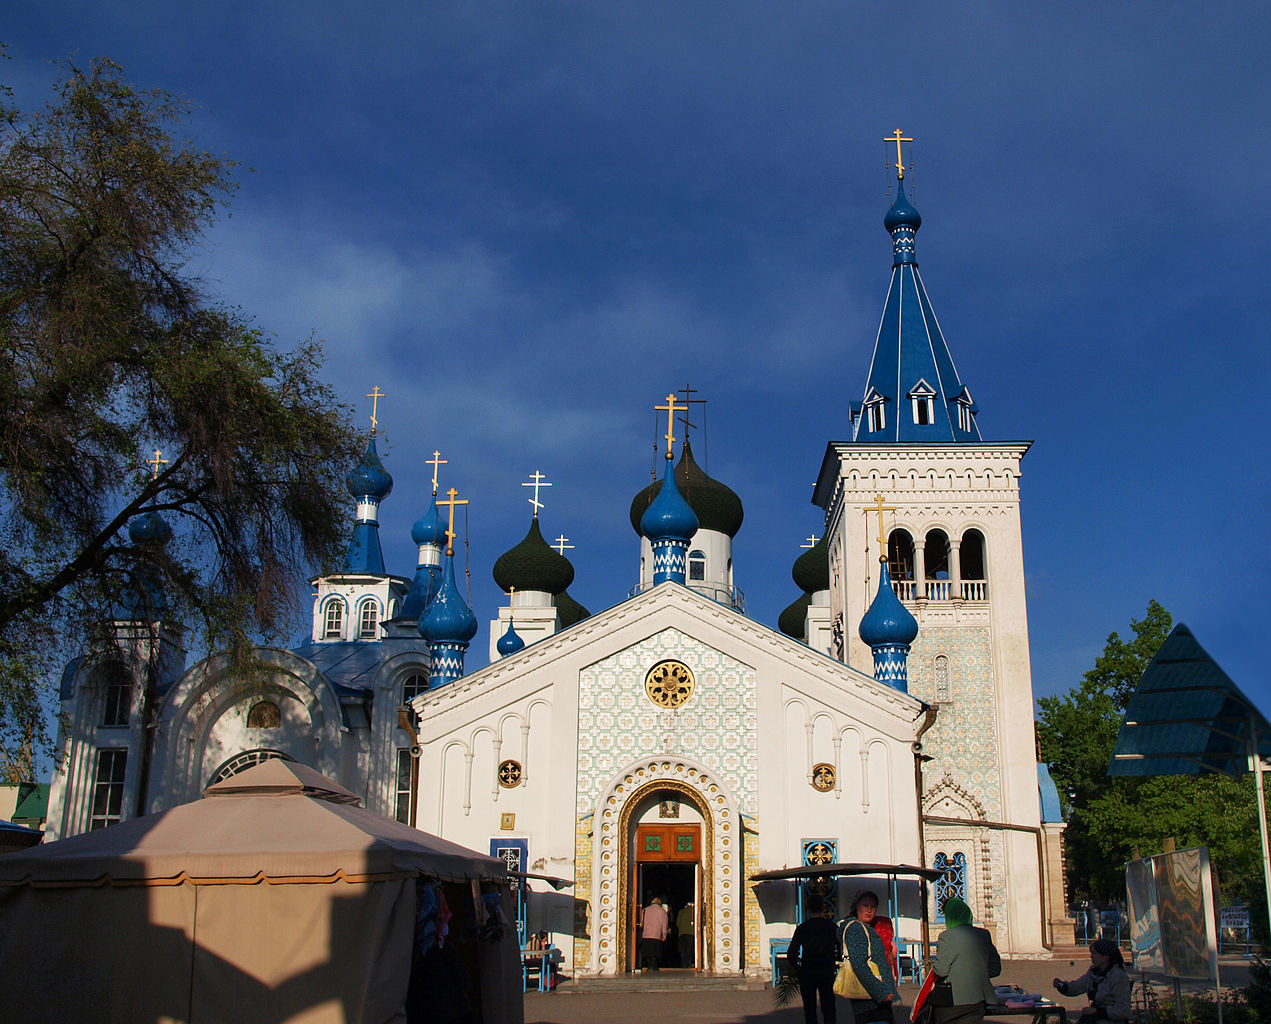 The Resurrection Cathedral in Bishkek, present-day Kyrgyzstan, built in 1944-47